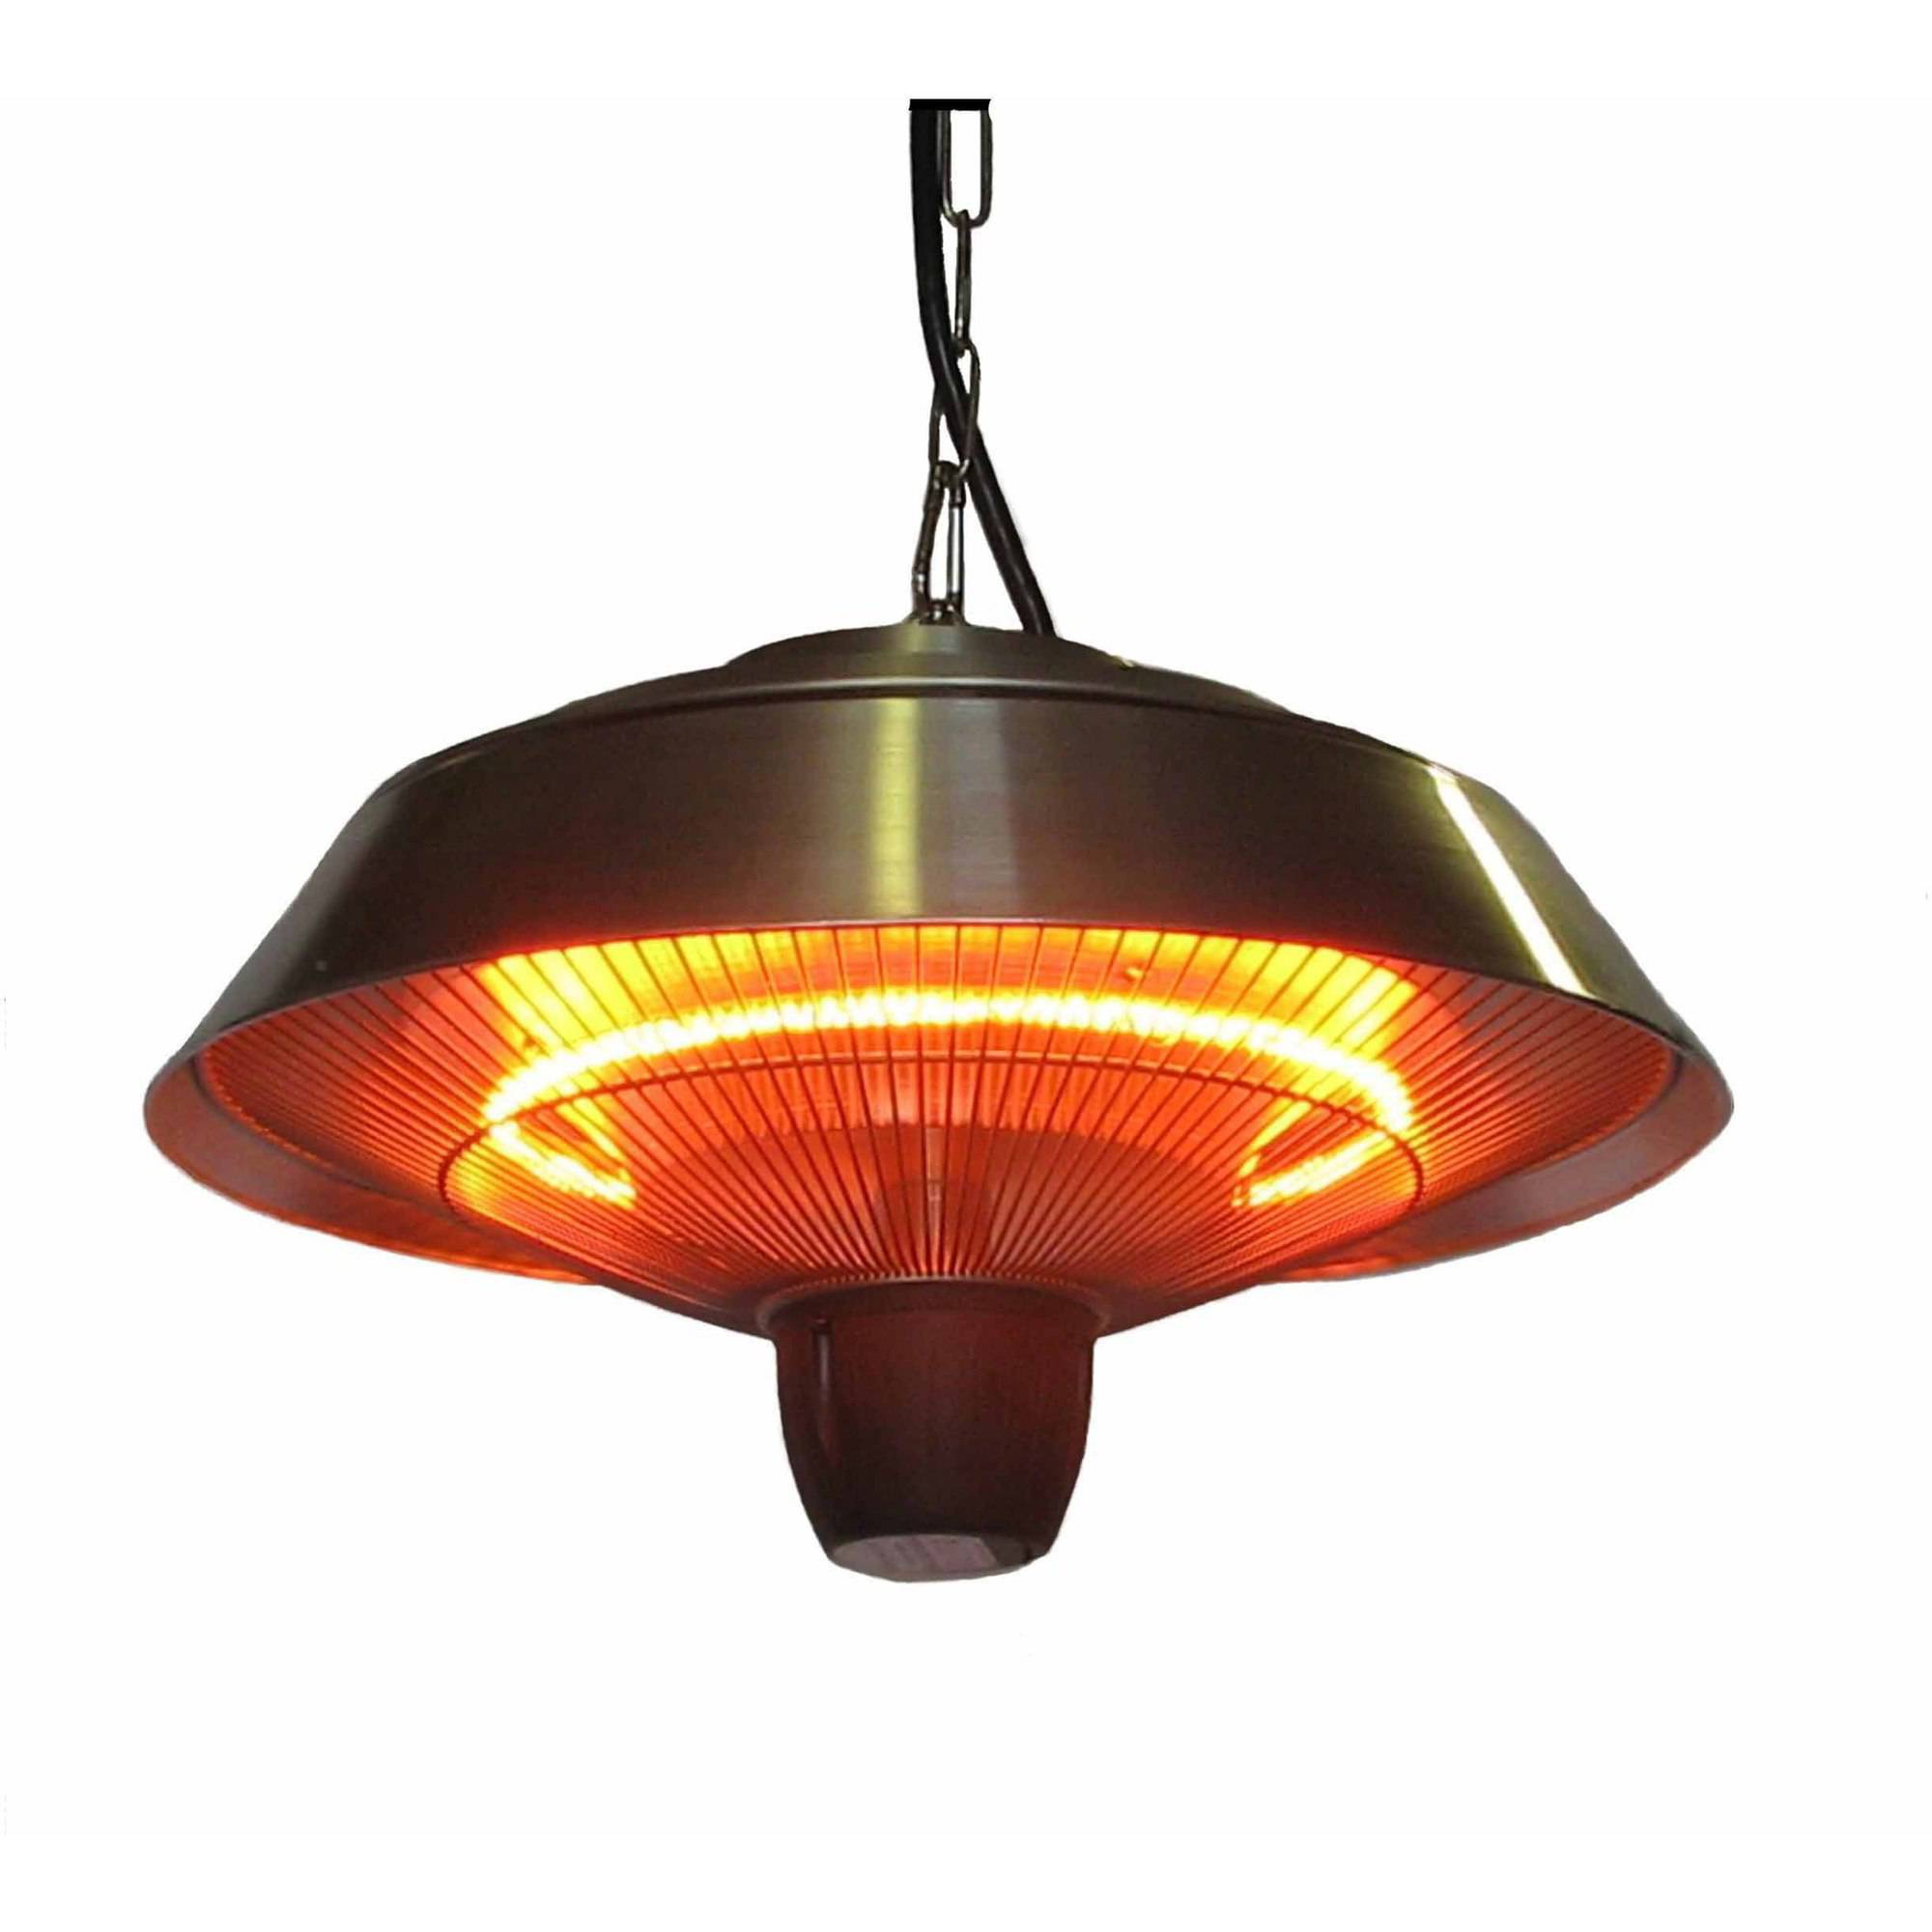 energ 1500watt hanging electric infrared gazebo heater brushed aluminum walmartcom - Electric Heaters Lowes